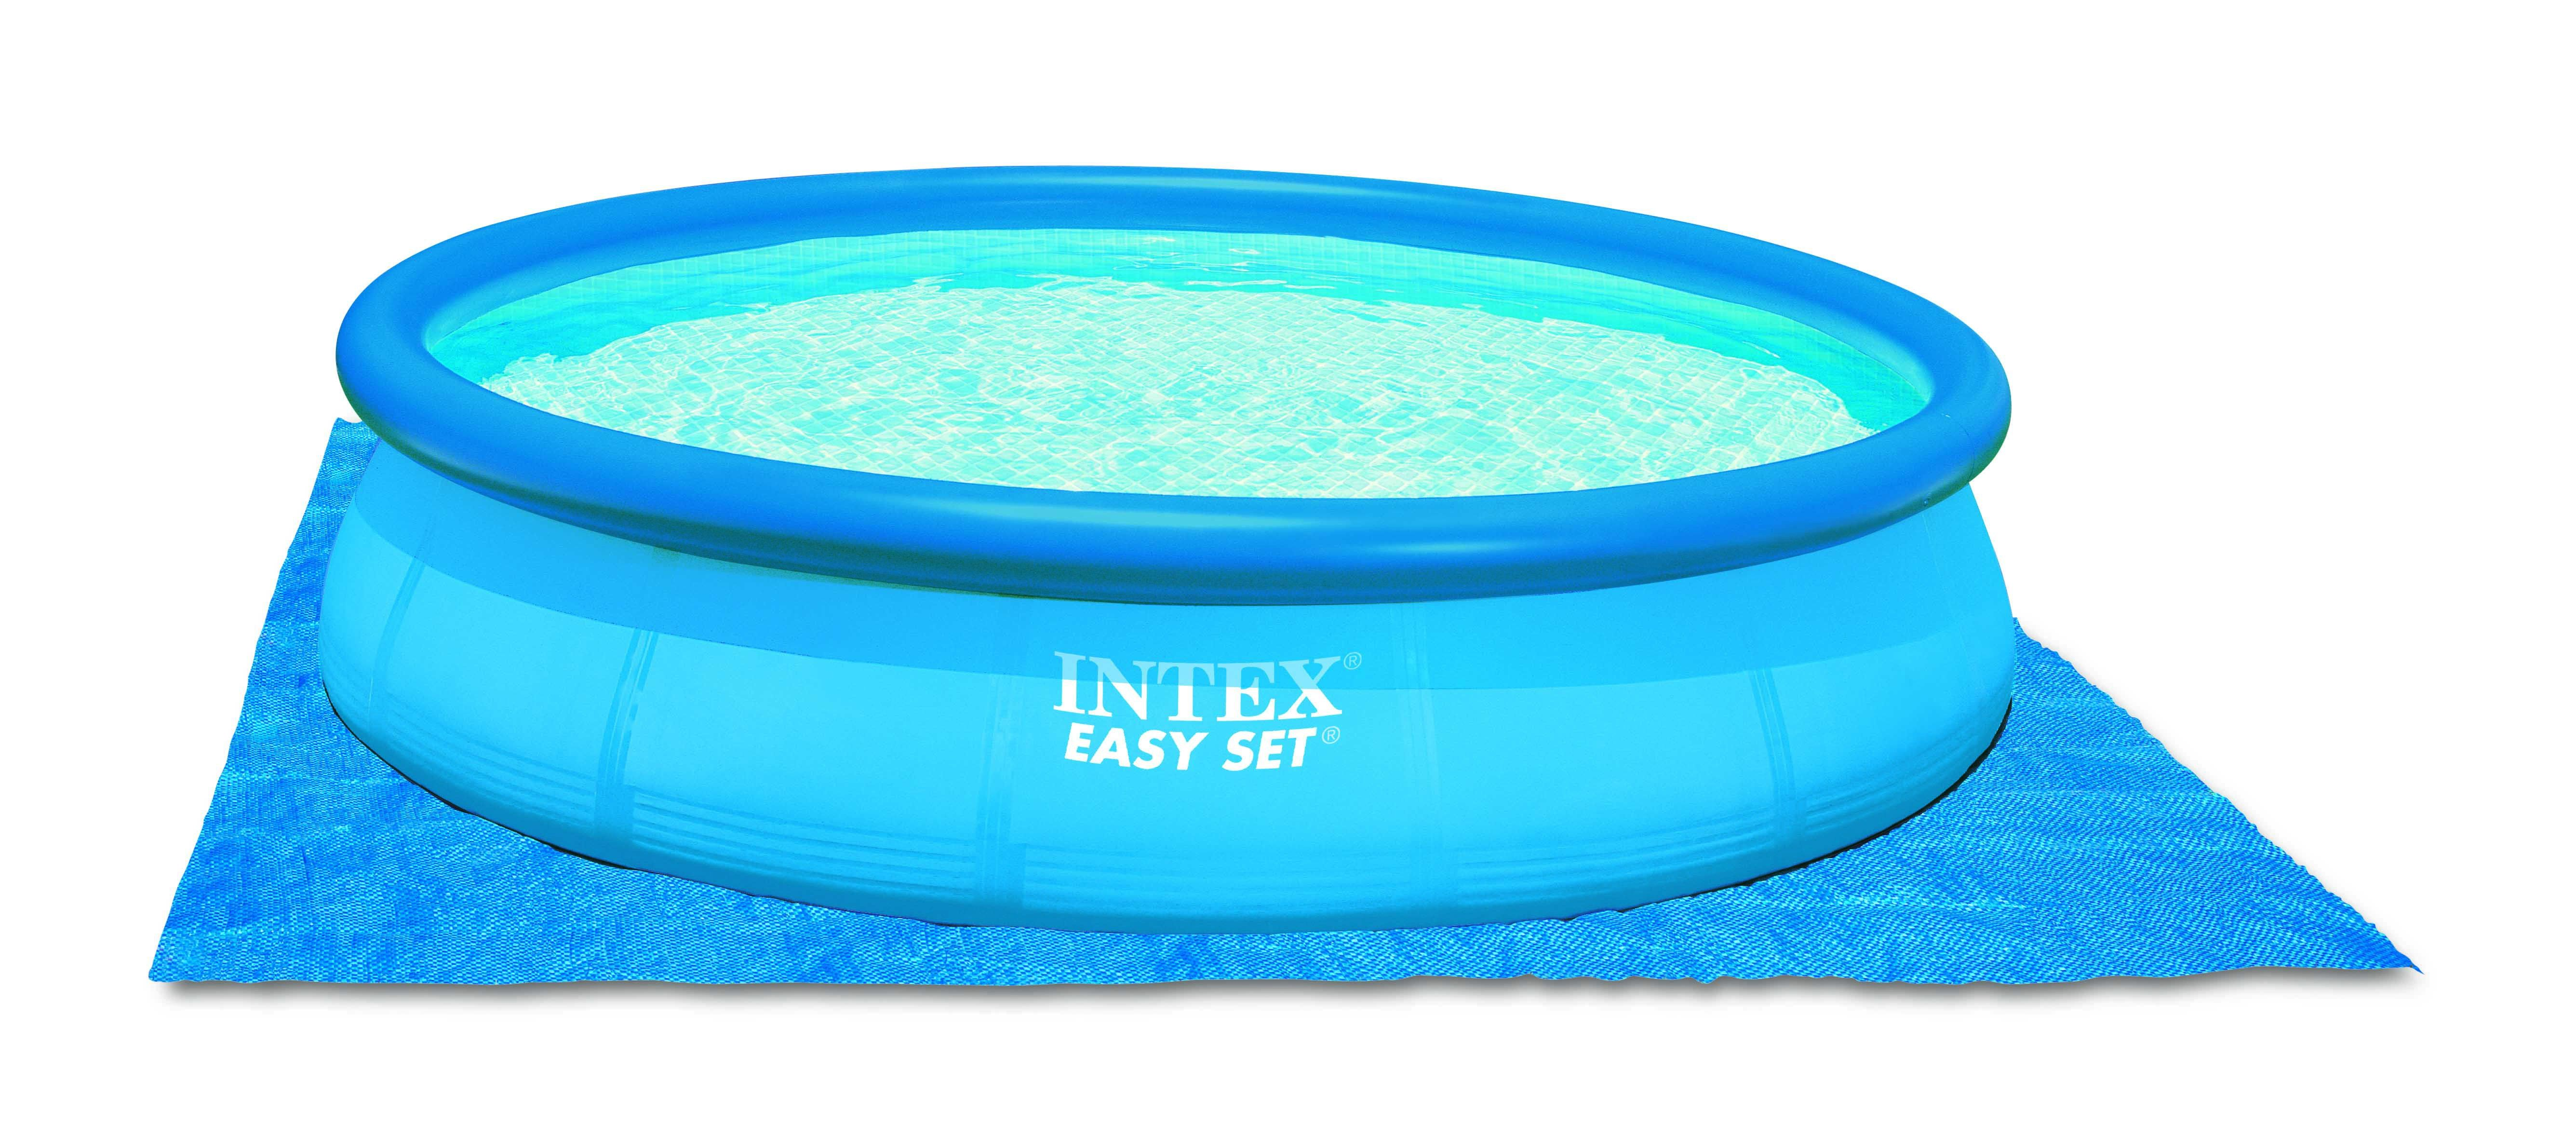 Pool Filteranlage Bestway Intex Pool Intex Bodenplane Unterlage 472 Cm X 472 Cm